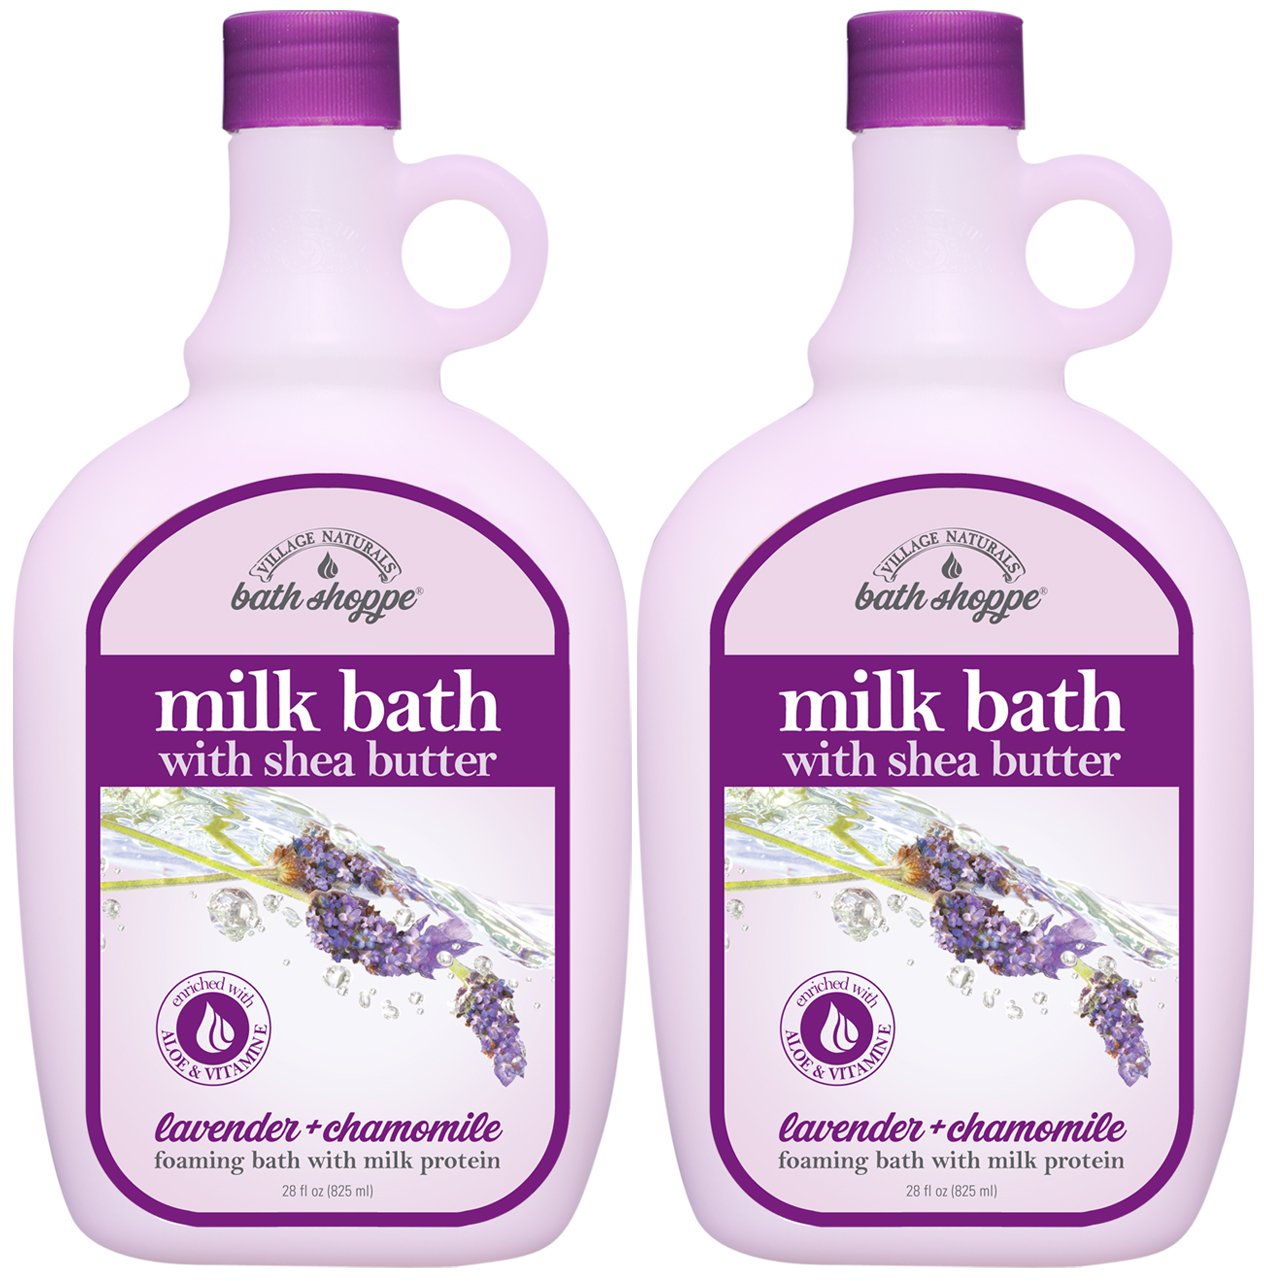 Village Naturals Bath Shoppe English Lavender Milk Bath 28 Fl Oz. 2-pack 66001